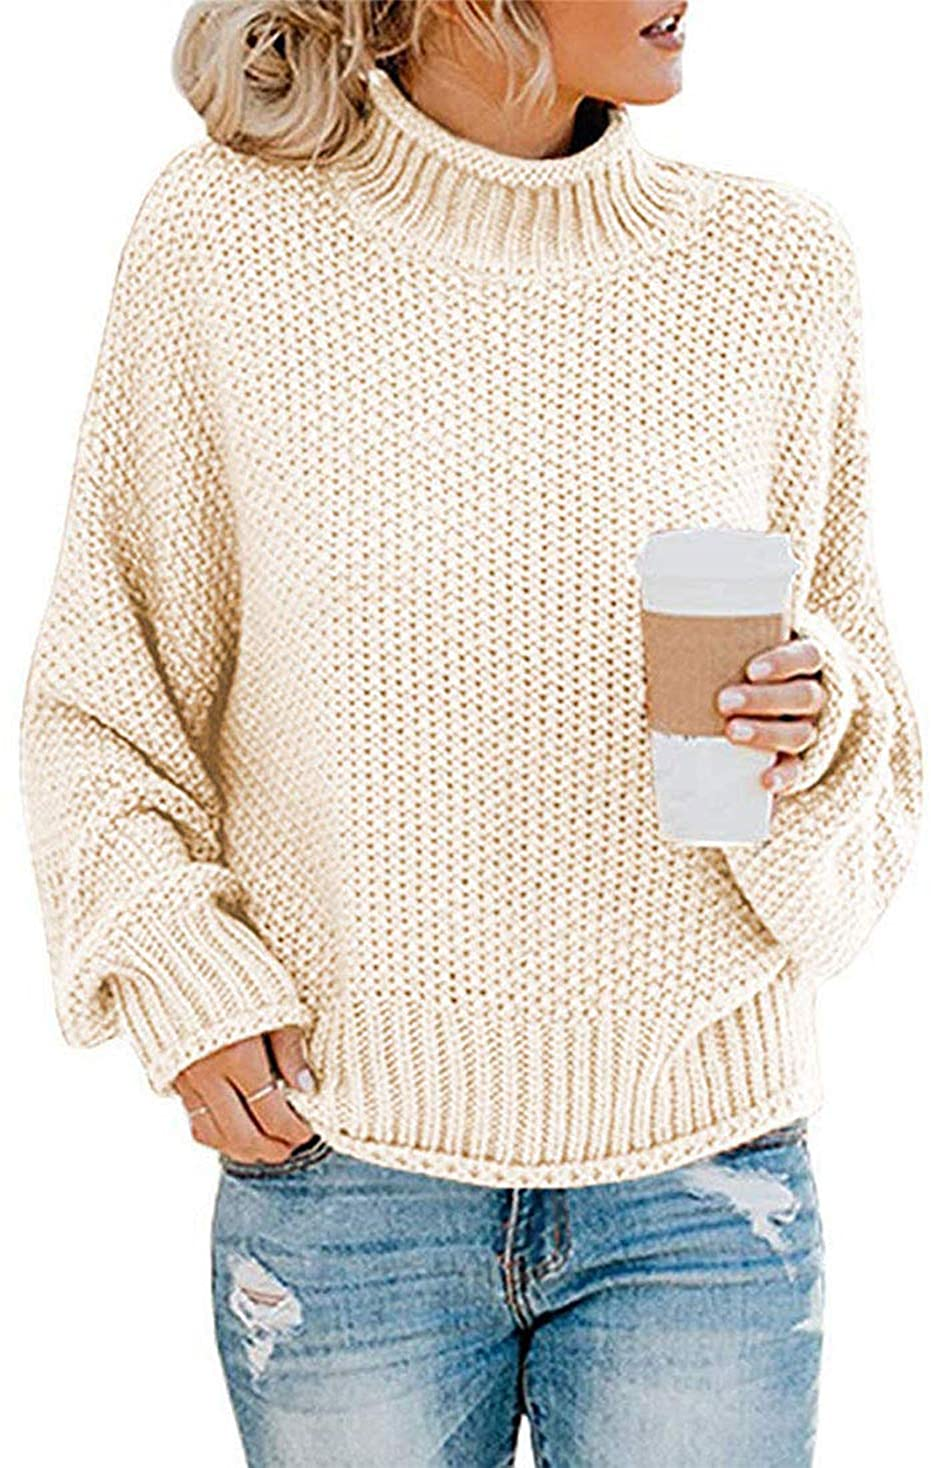 The Best of Amazon Sweaters